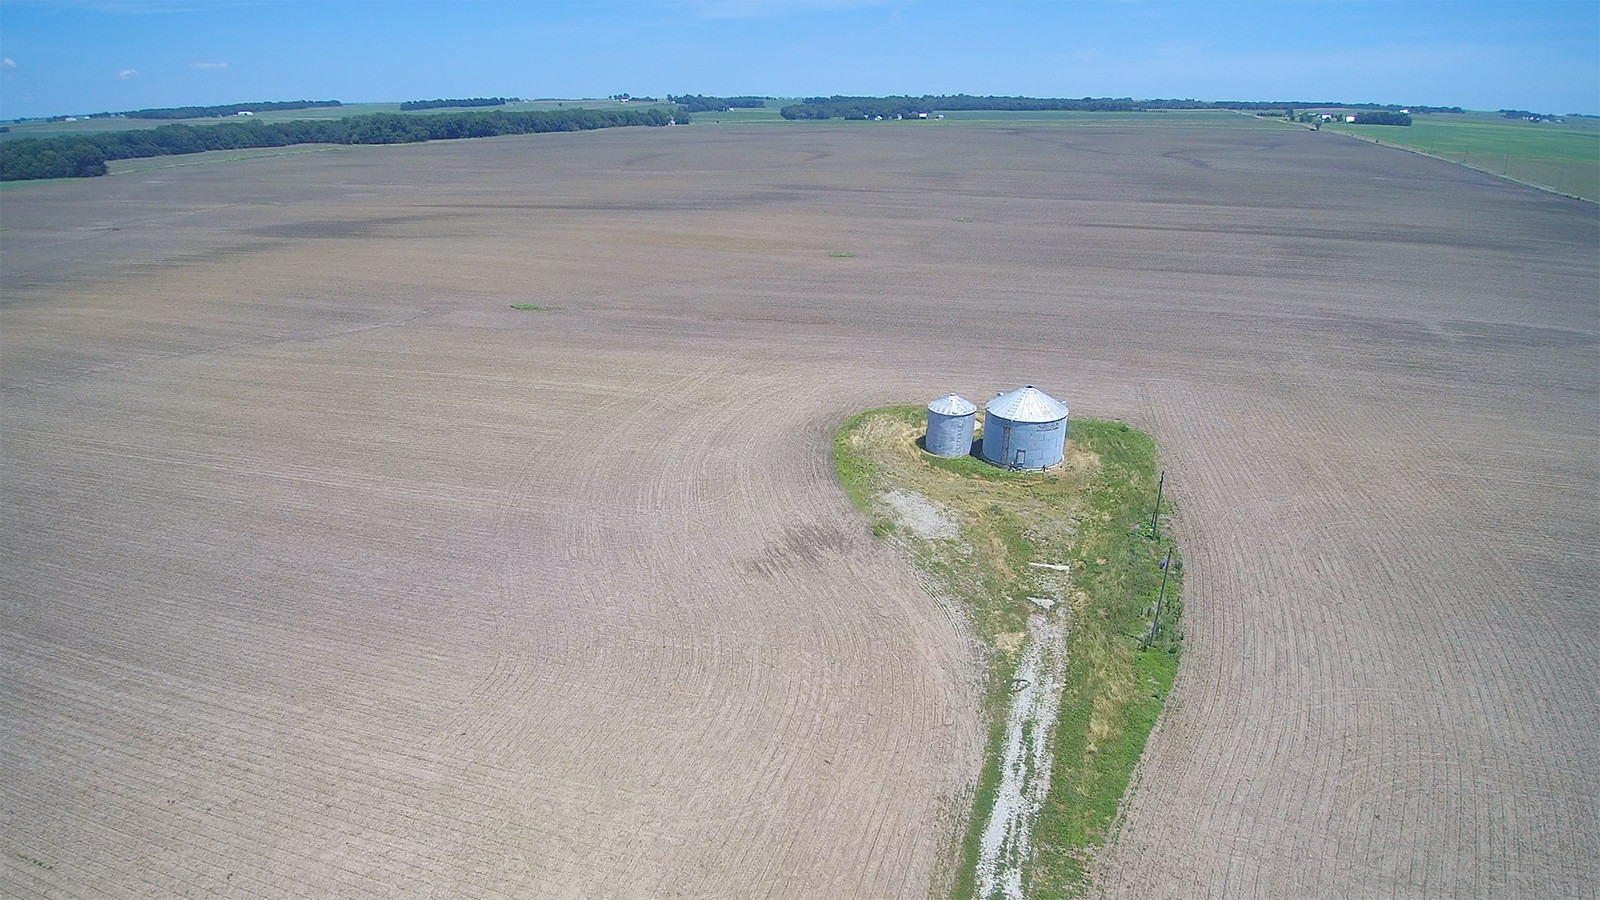 Drone 4 - MWA Auctions & Real Estate | Macon Co Farmland Auction 240 Ac - Dec 12 2019